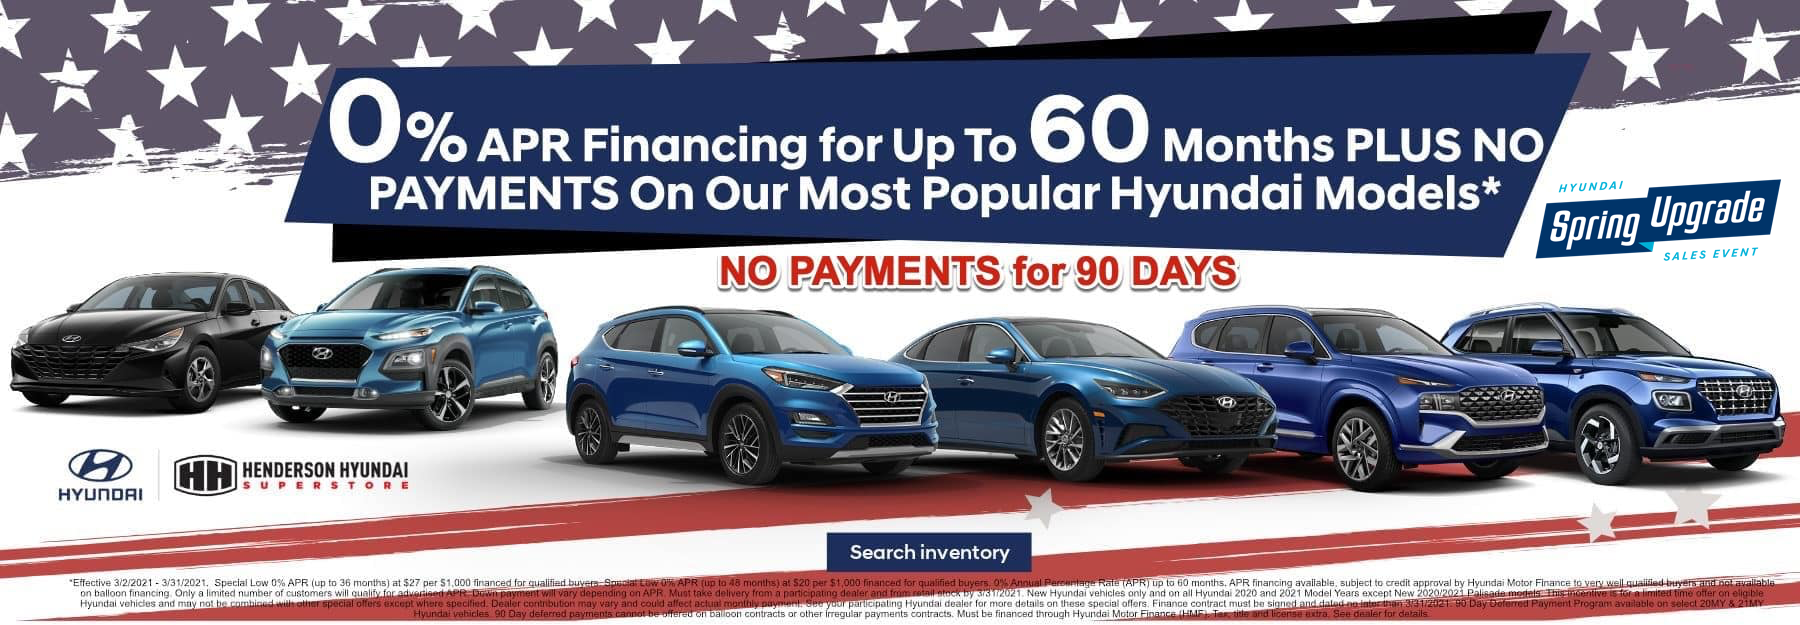 March_2021_General_Henderson_Hyundai-1-1800×625-1800x625_with spring logo